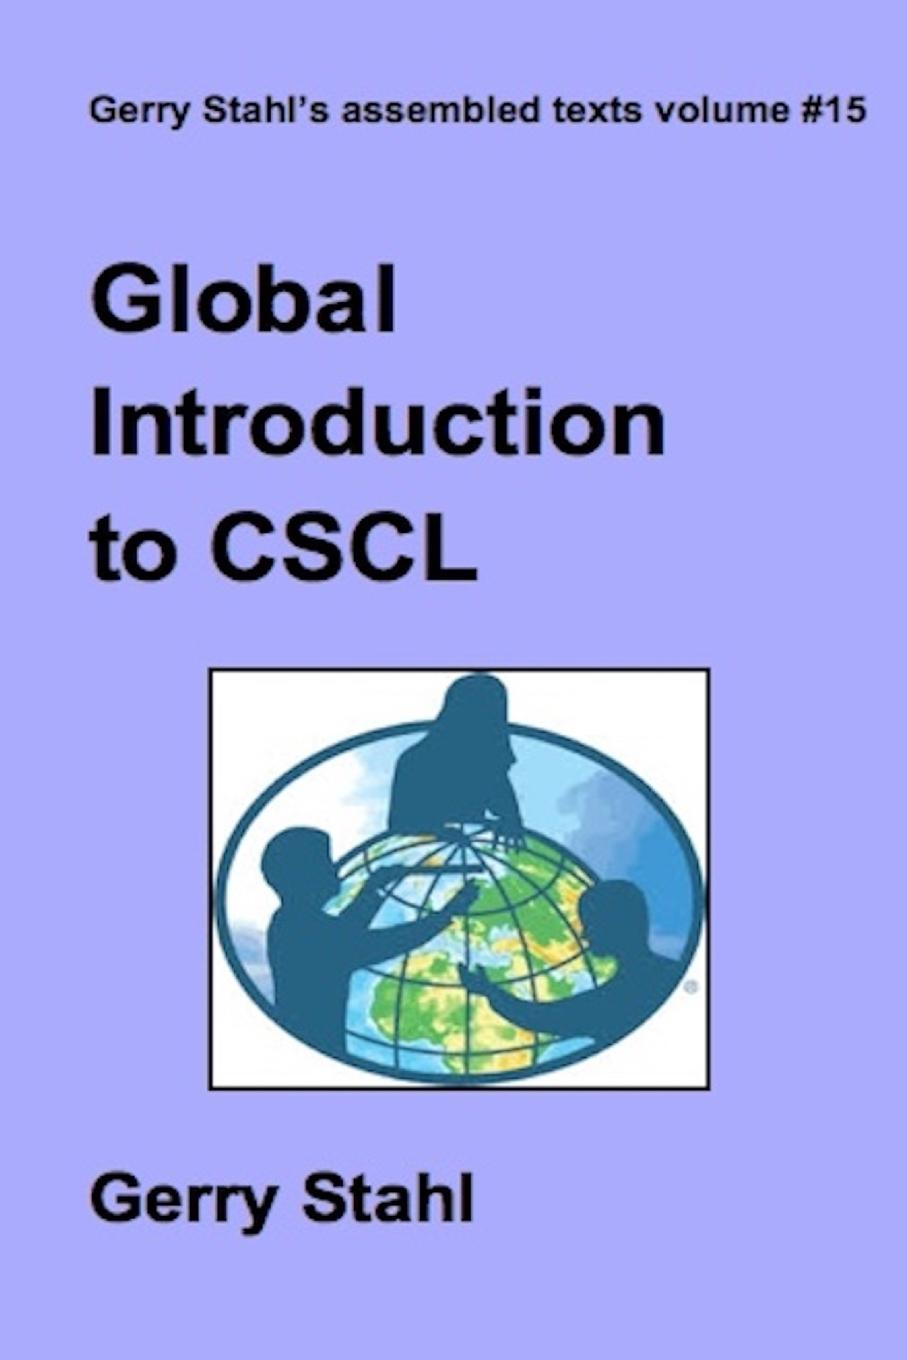 Gerry Stahl Global Introduction to CSCL tim cresswell place an introduction